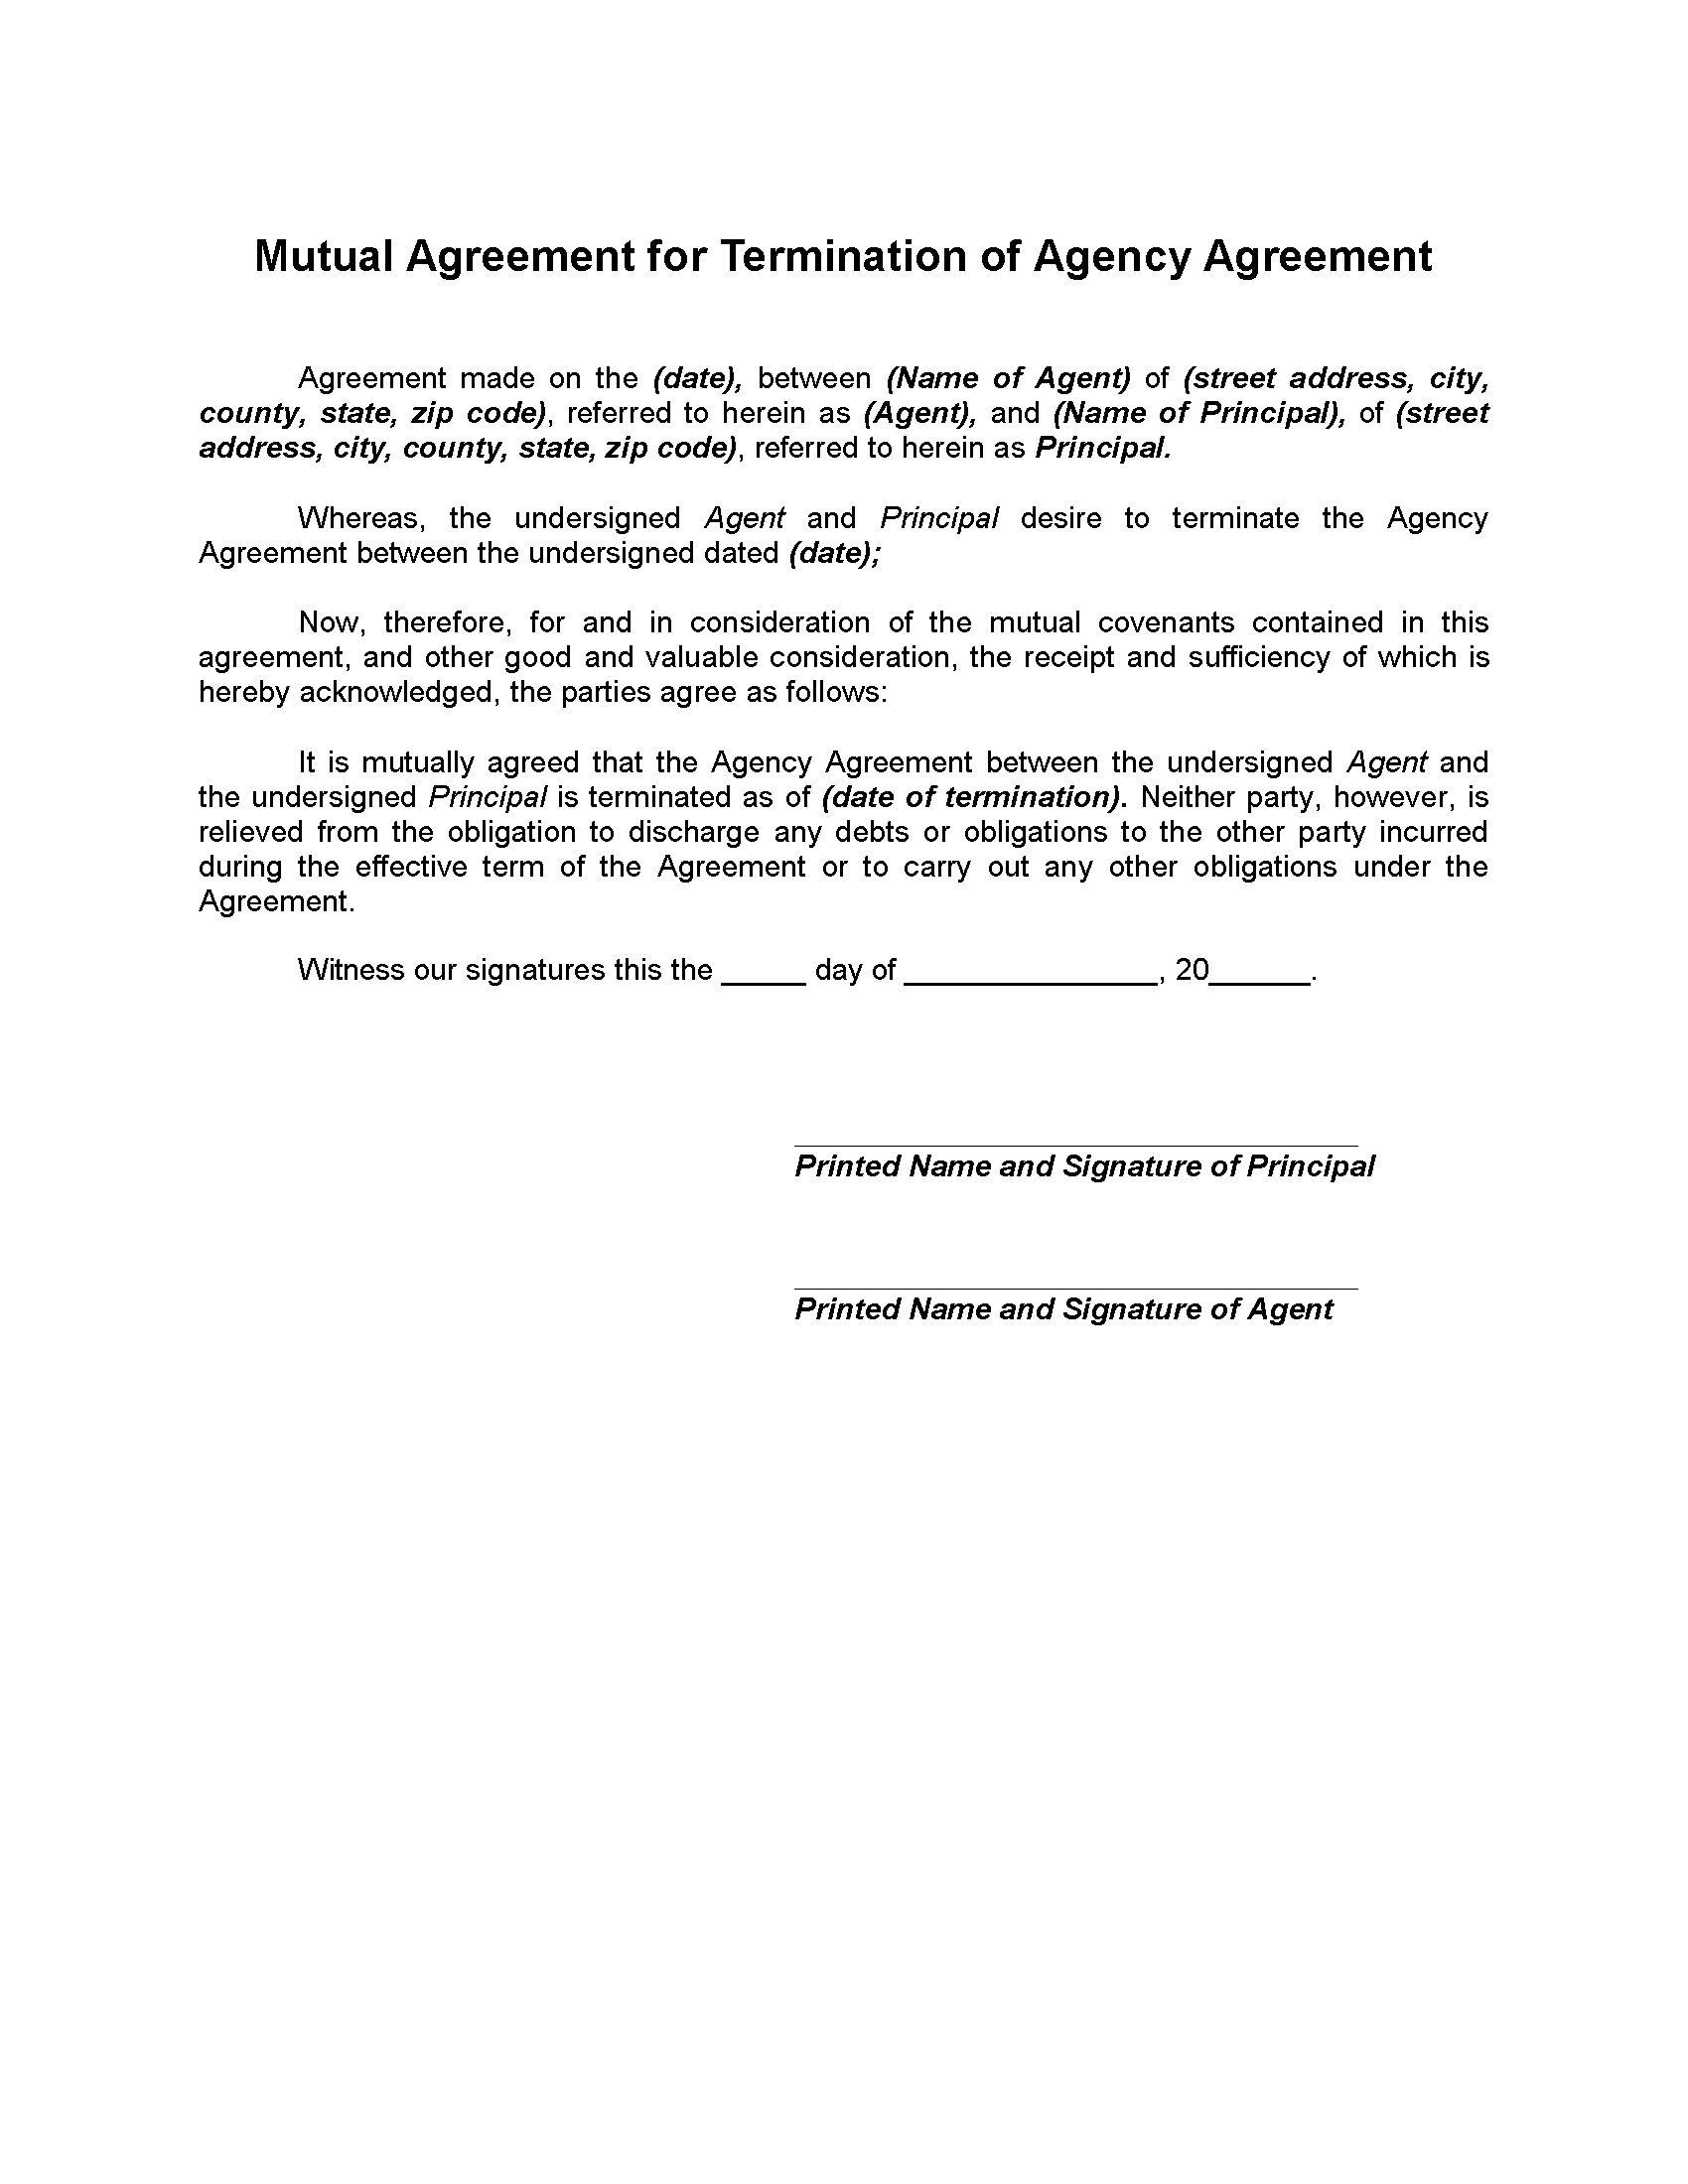 Picture Of Mutual Termination Of Agency Agreement